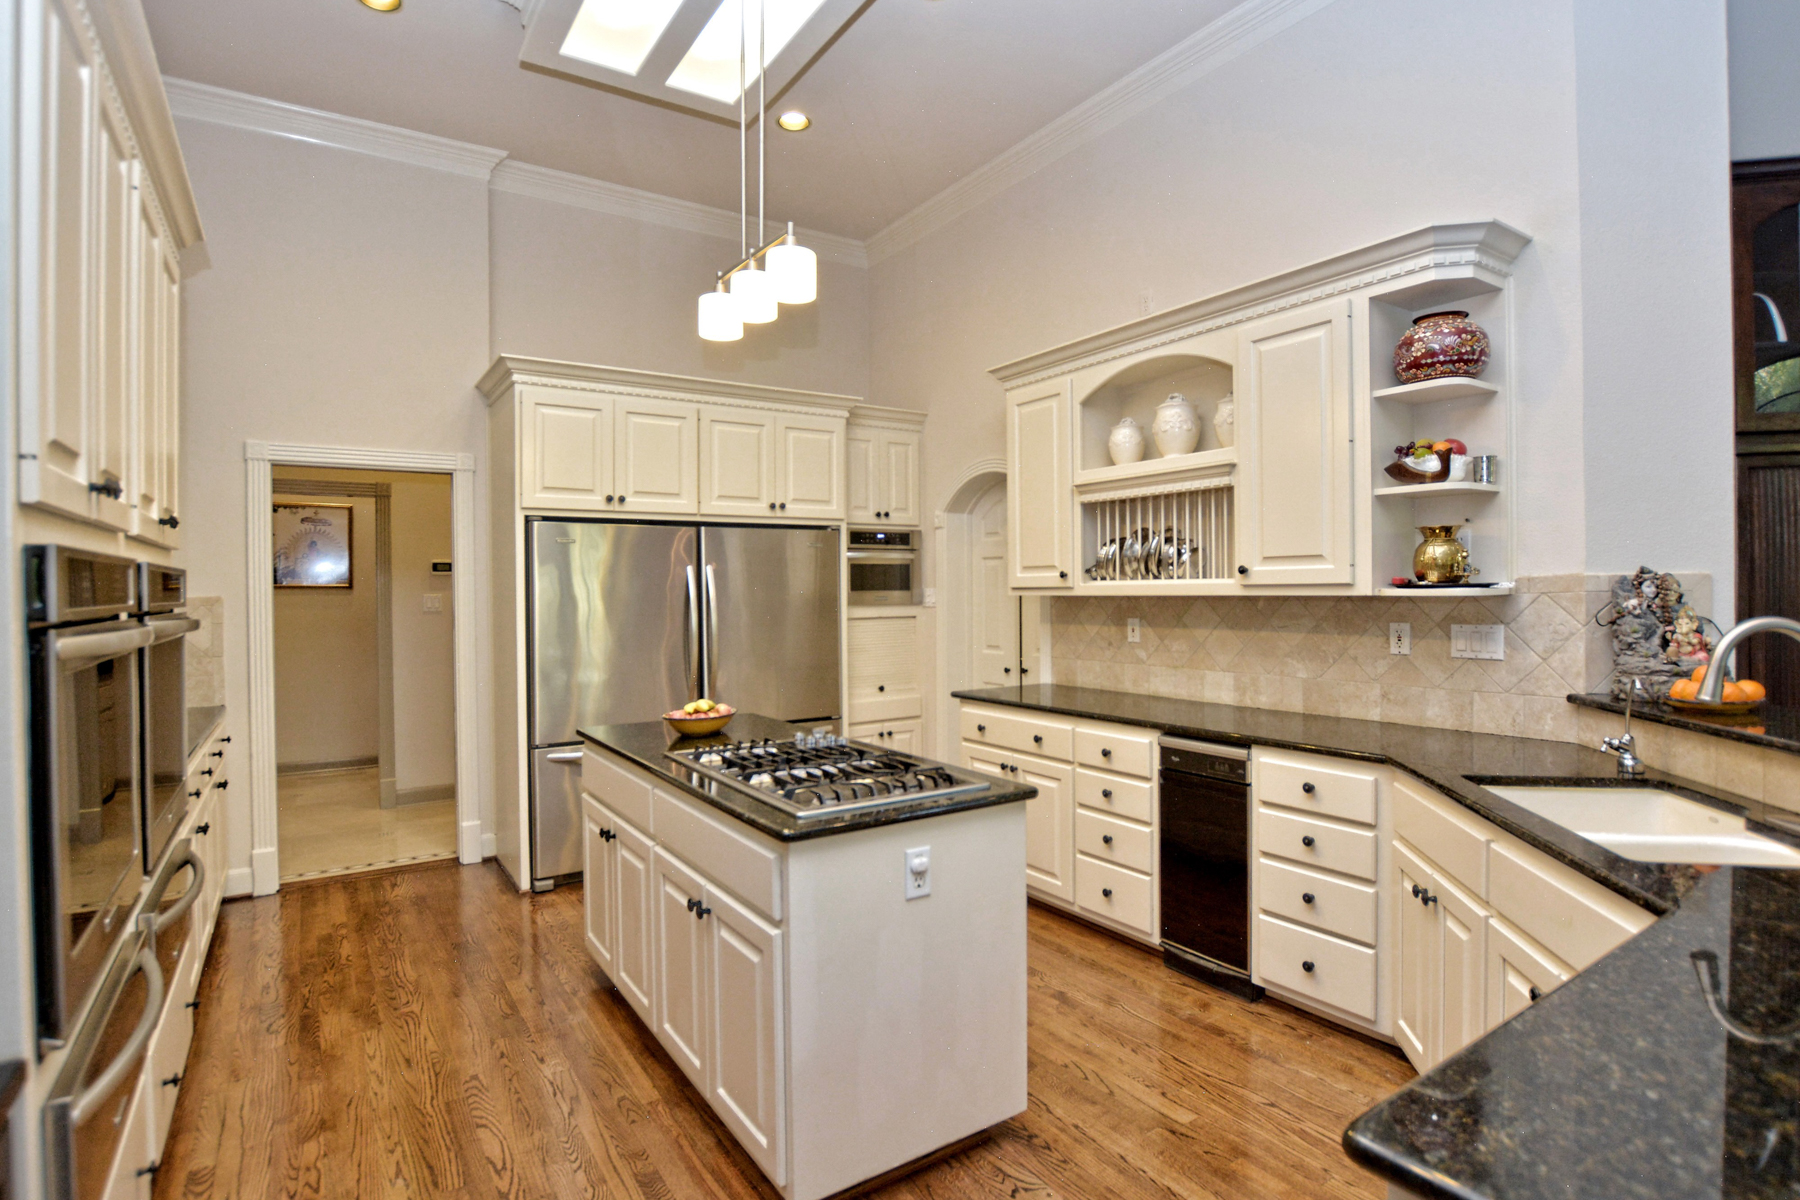 Additional photo for property listing at Refined Elegance in The Dominion 22 Galleria Dr San Antonio, Texas 78257 United States